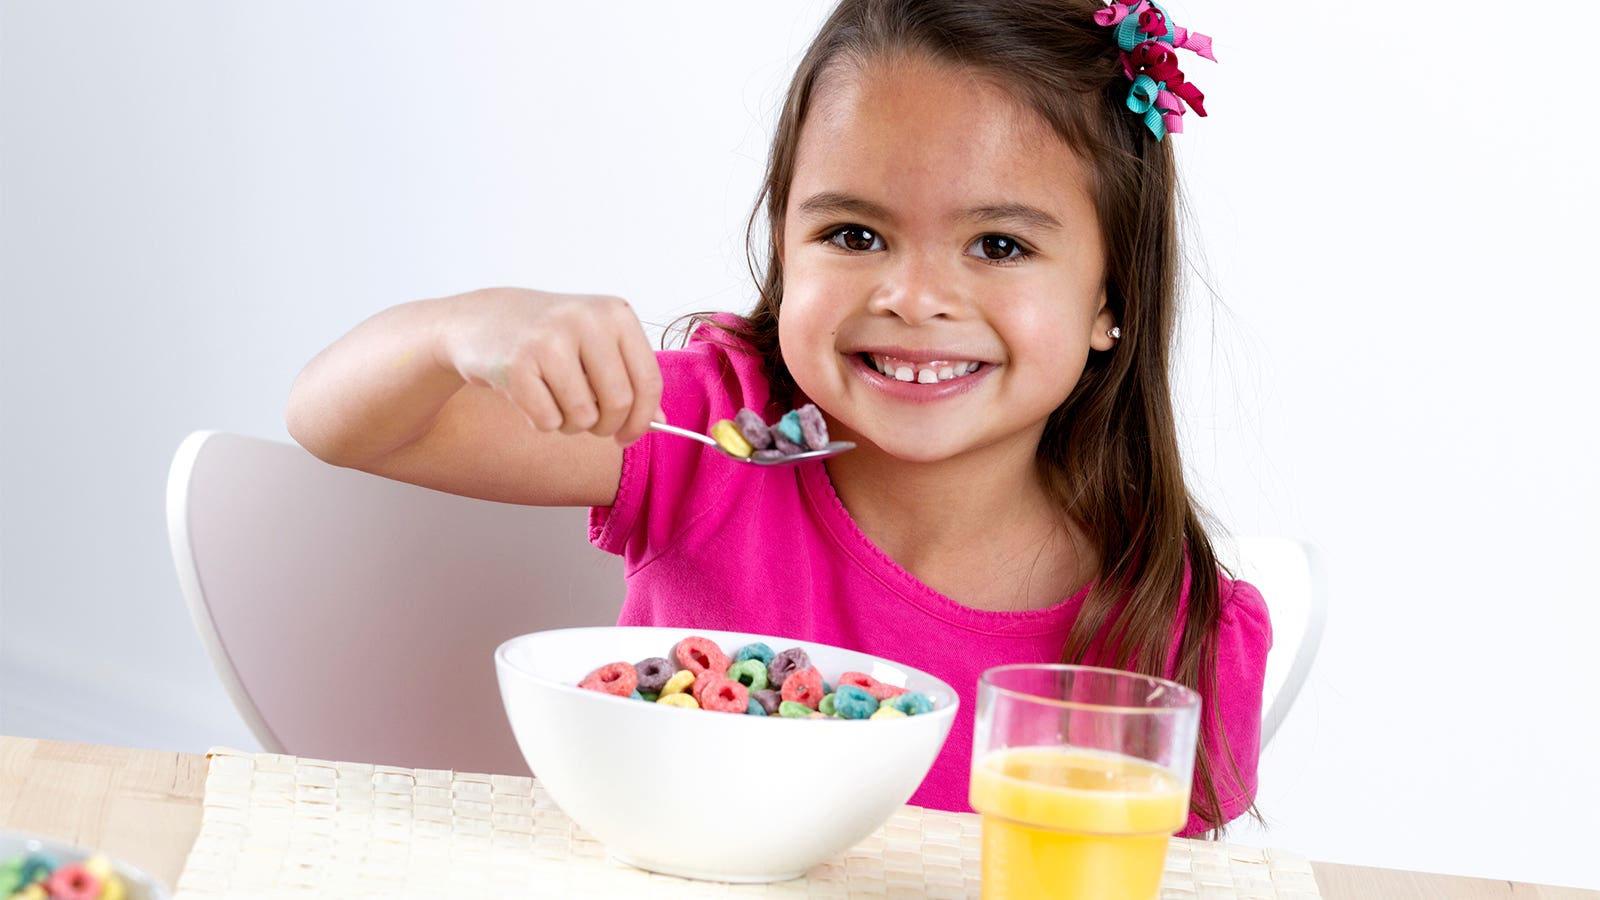 A little girl eats Fruit Loops cereal.